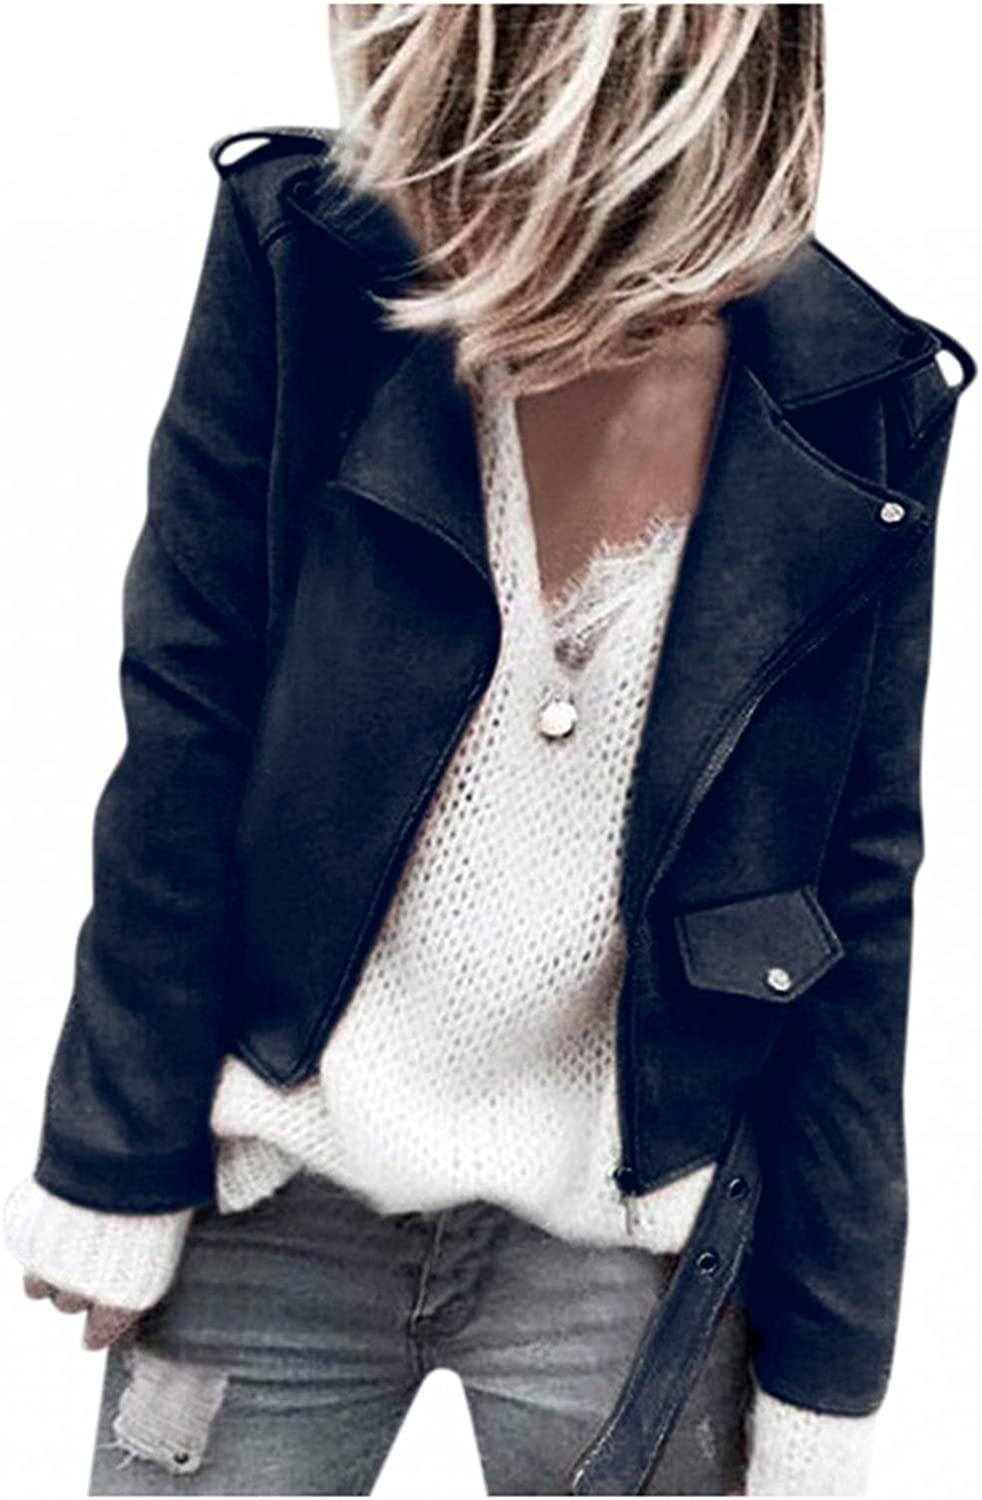 LEIYAN Faux Leather Nippon regular agency Suede Jackets for Women Sleeve Max 72% OFF Zip Long Up L